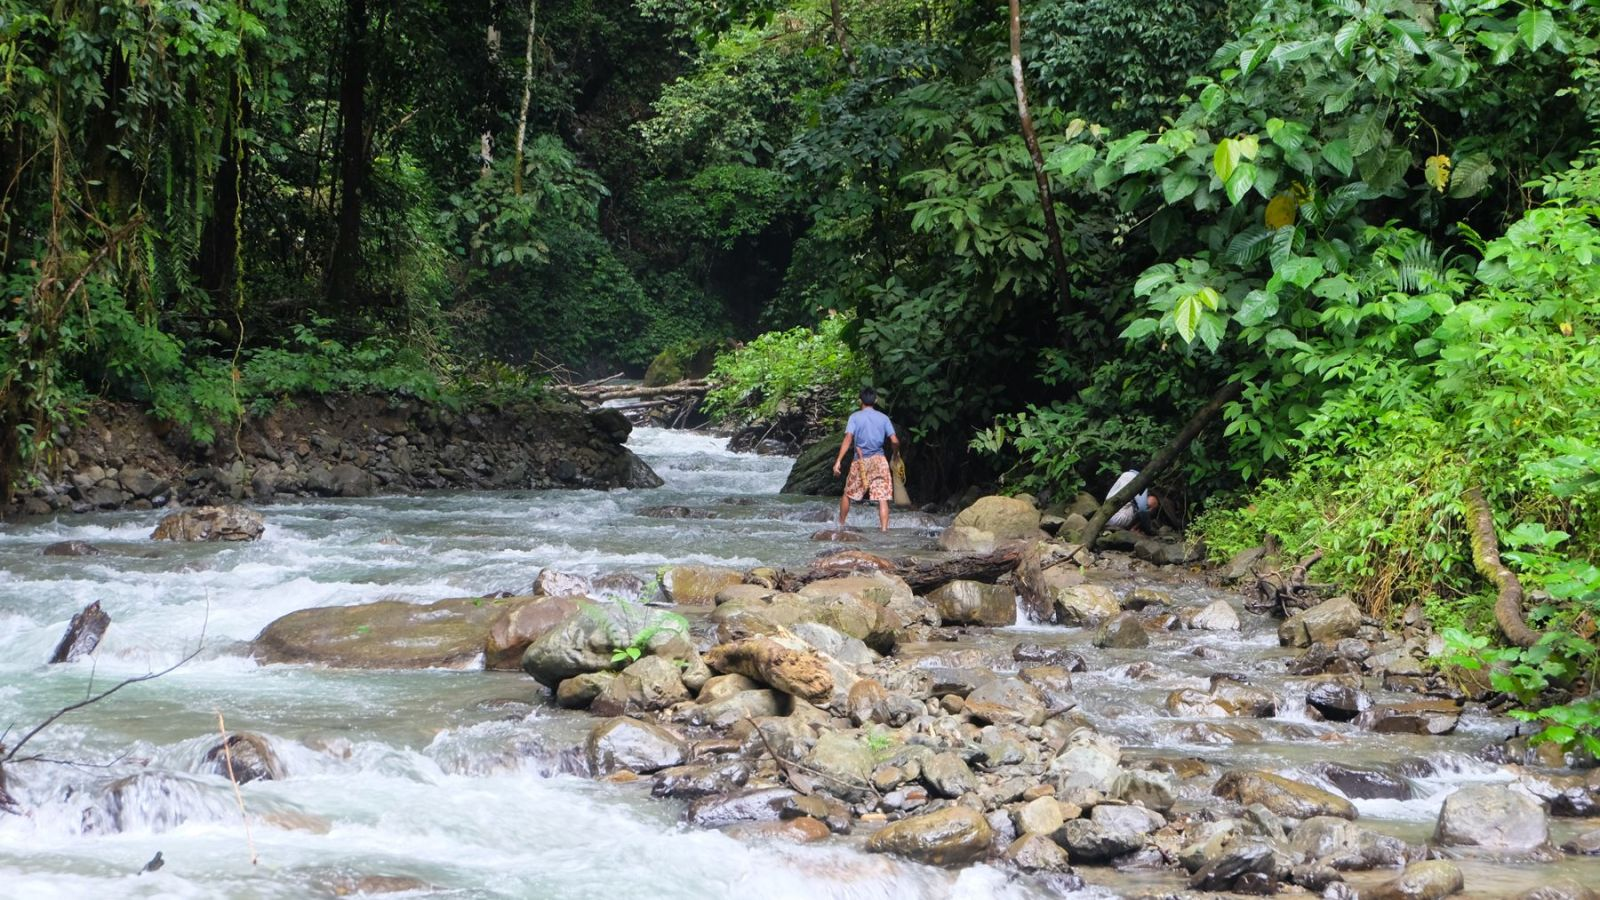 a photo of a person catching fish in gunung leuser national park.